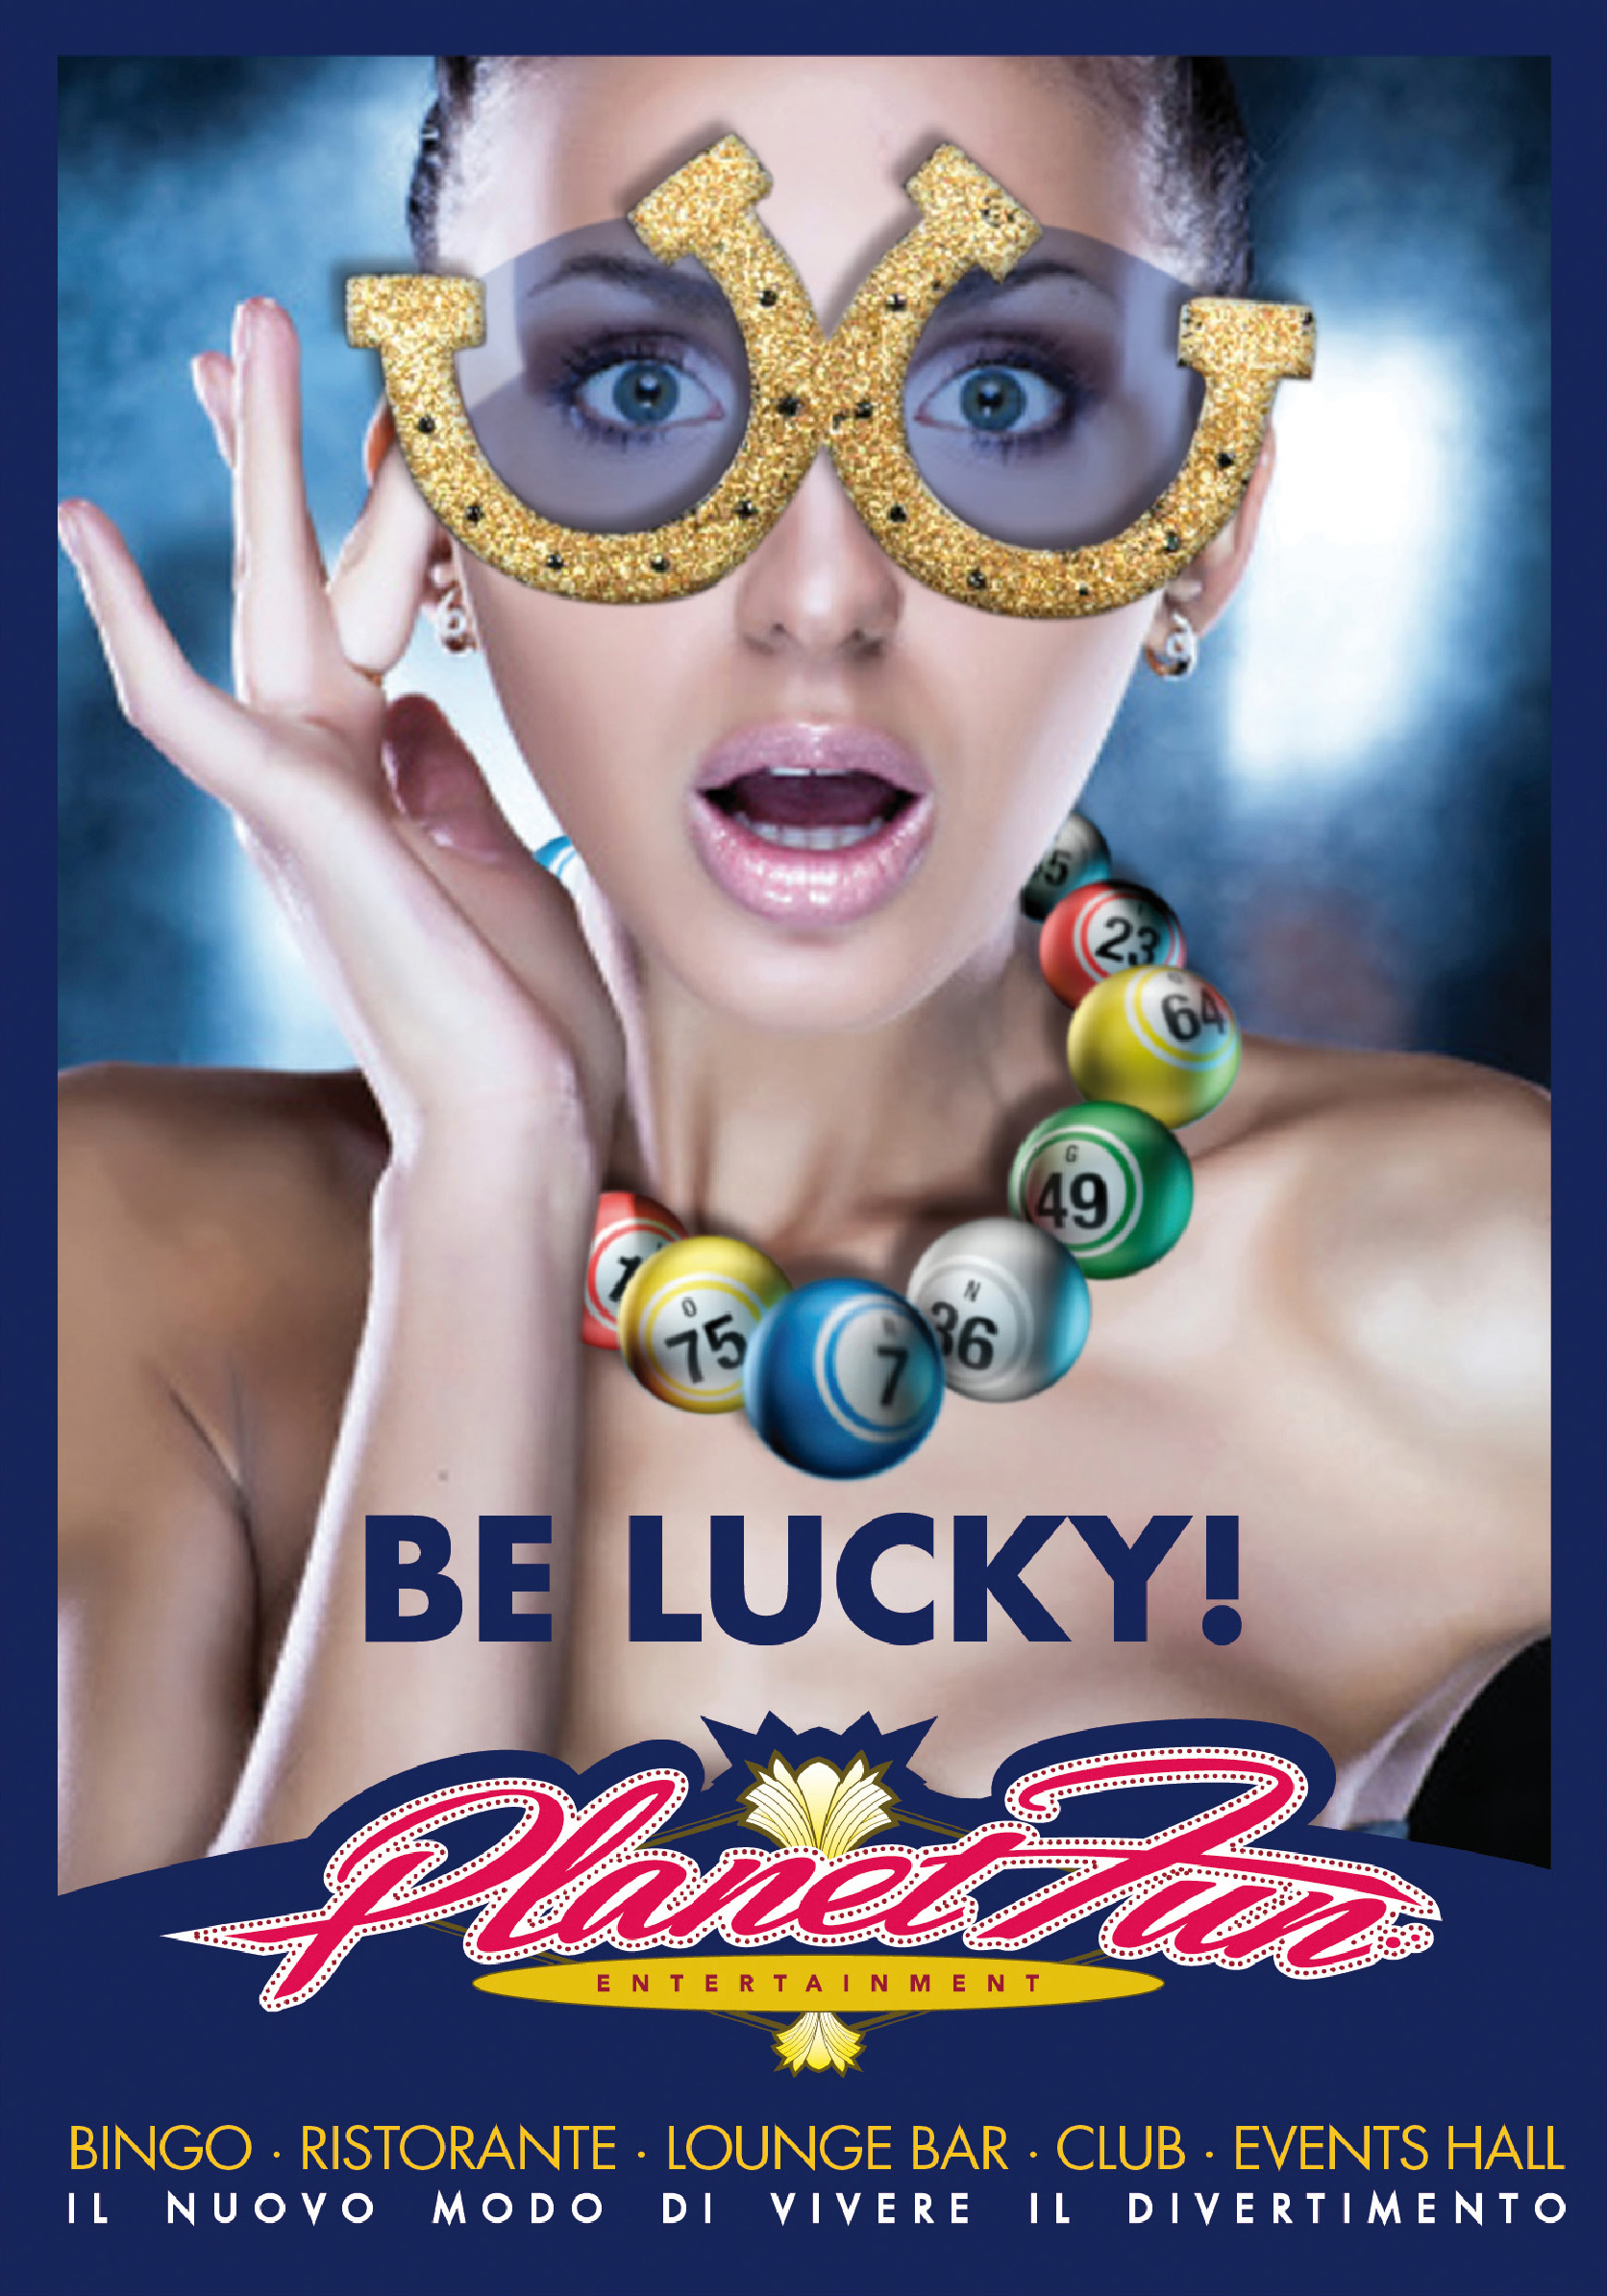 BE LUCKY!